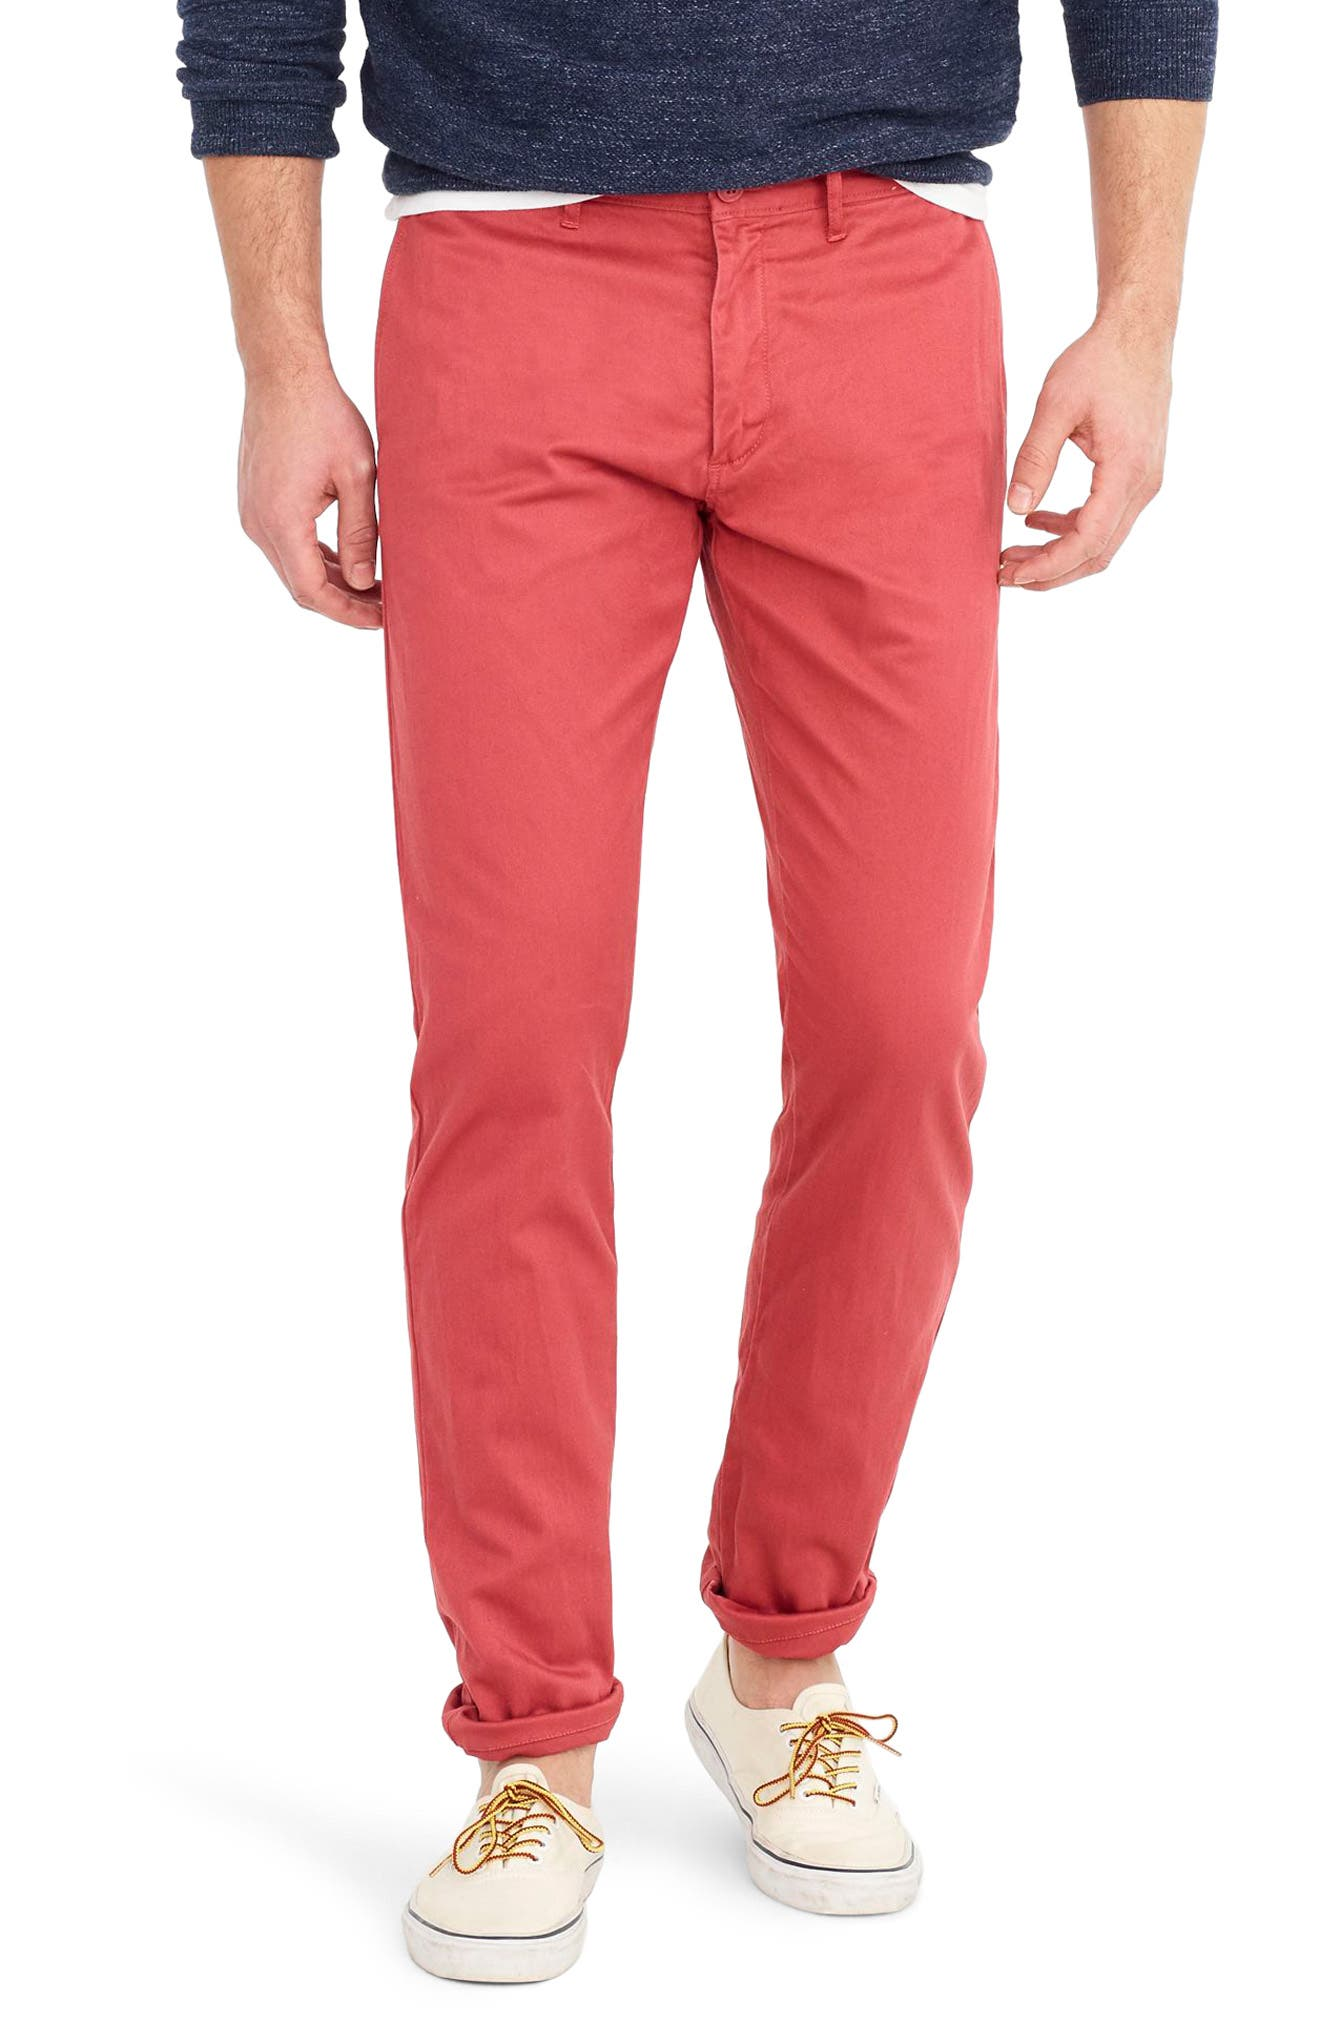 Alternate Image 1 Selected - J.Crew 484 Slim Fit Stretch Chino Pants